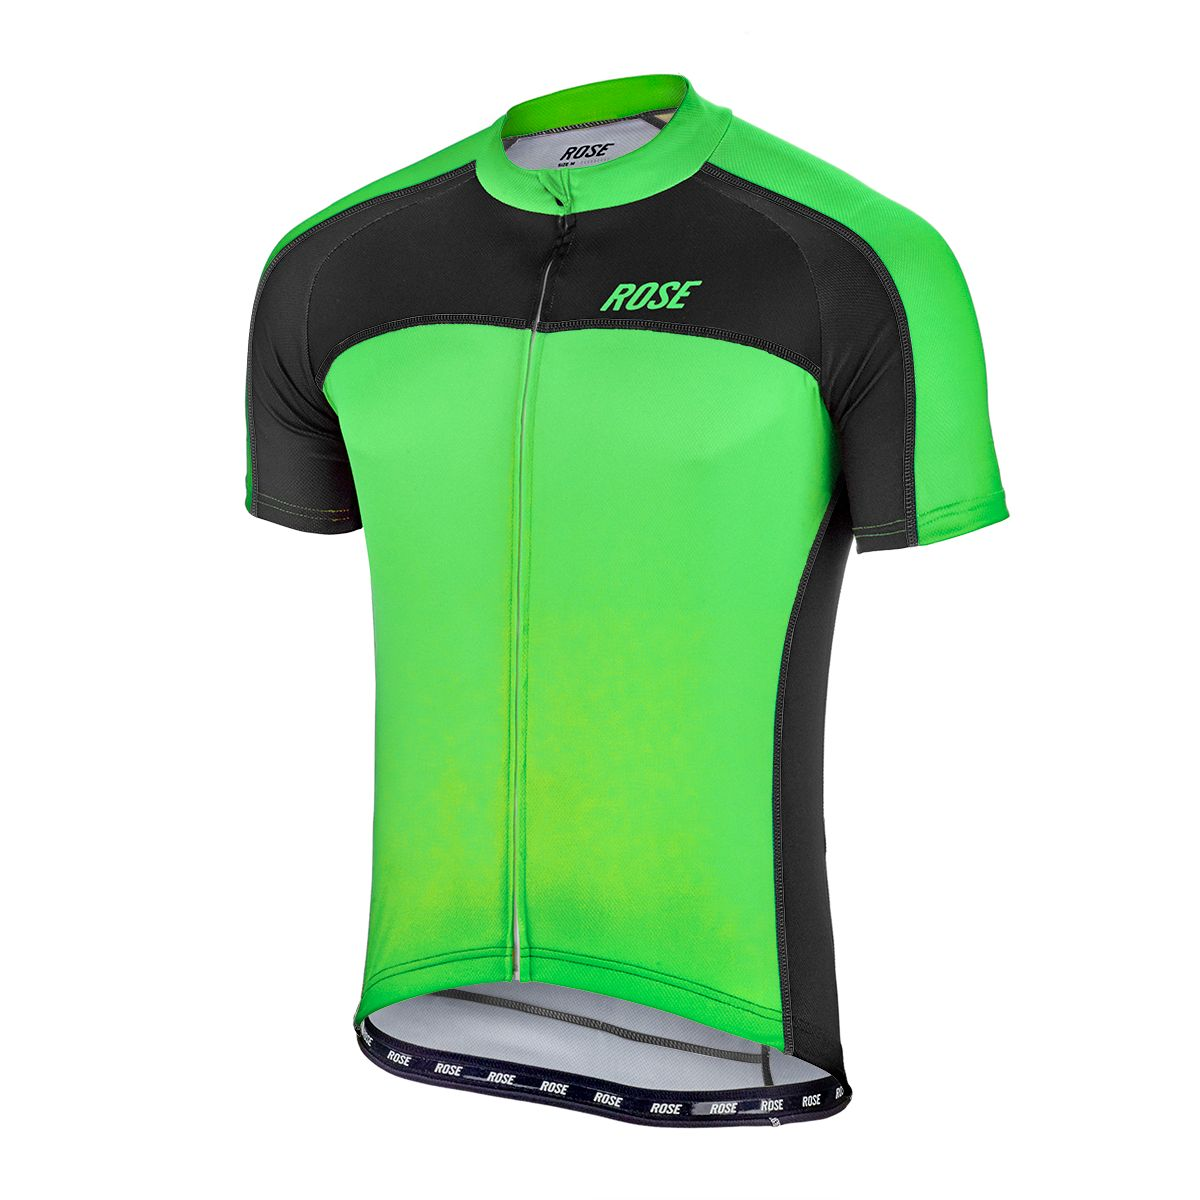 LINE short sleeve cycling jersey